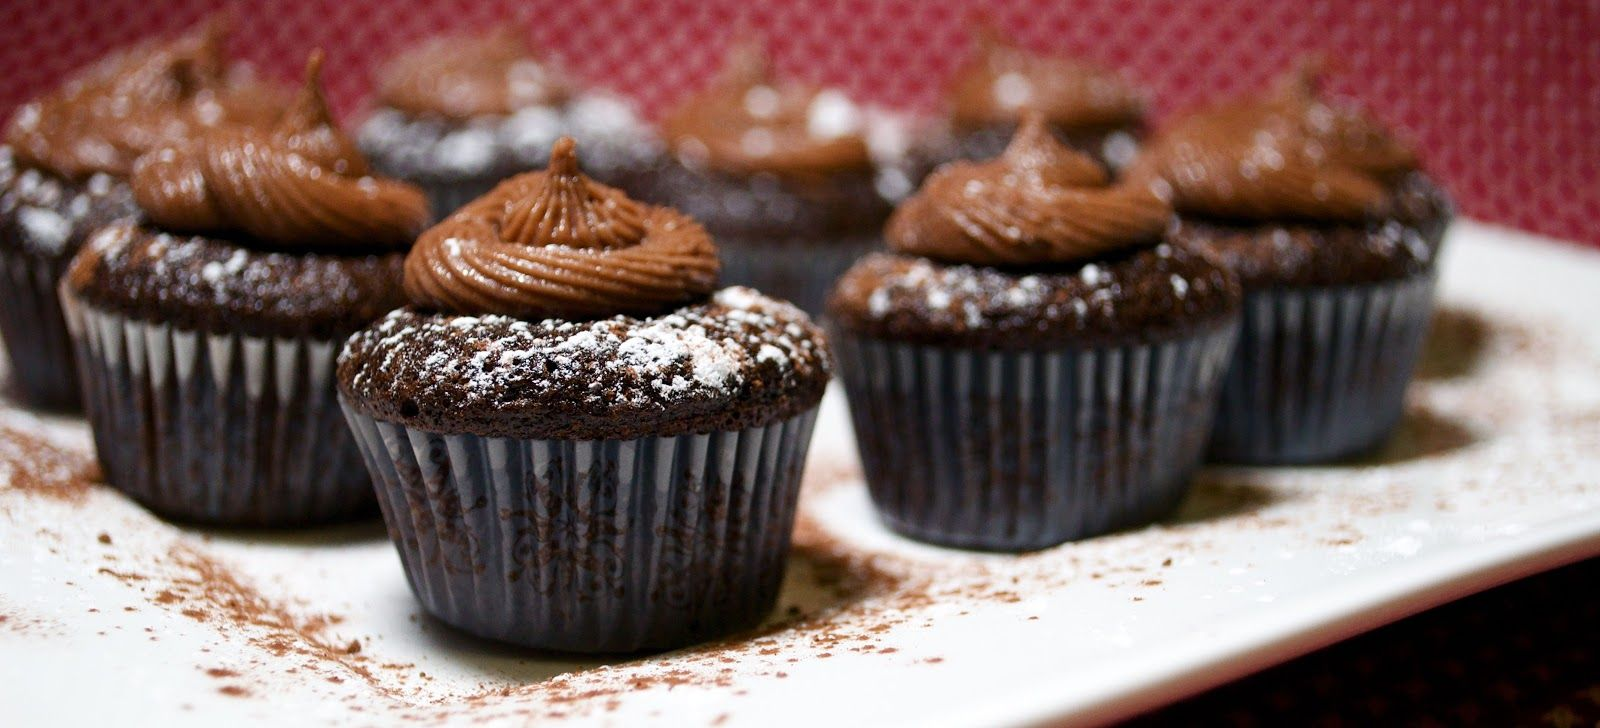 Chocolate cupcakes chocolate frosting gluten free